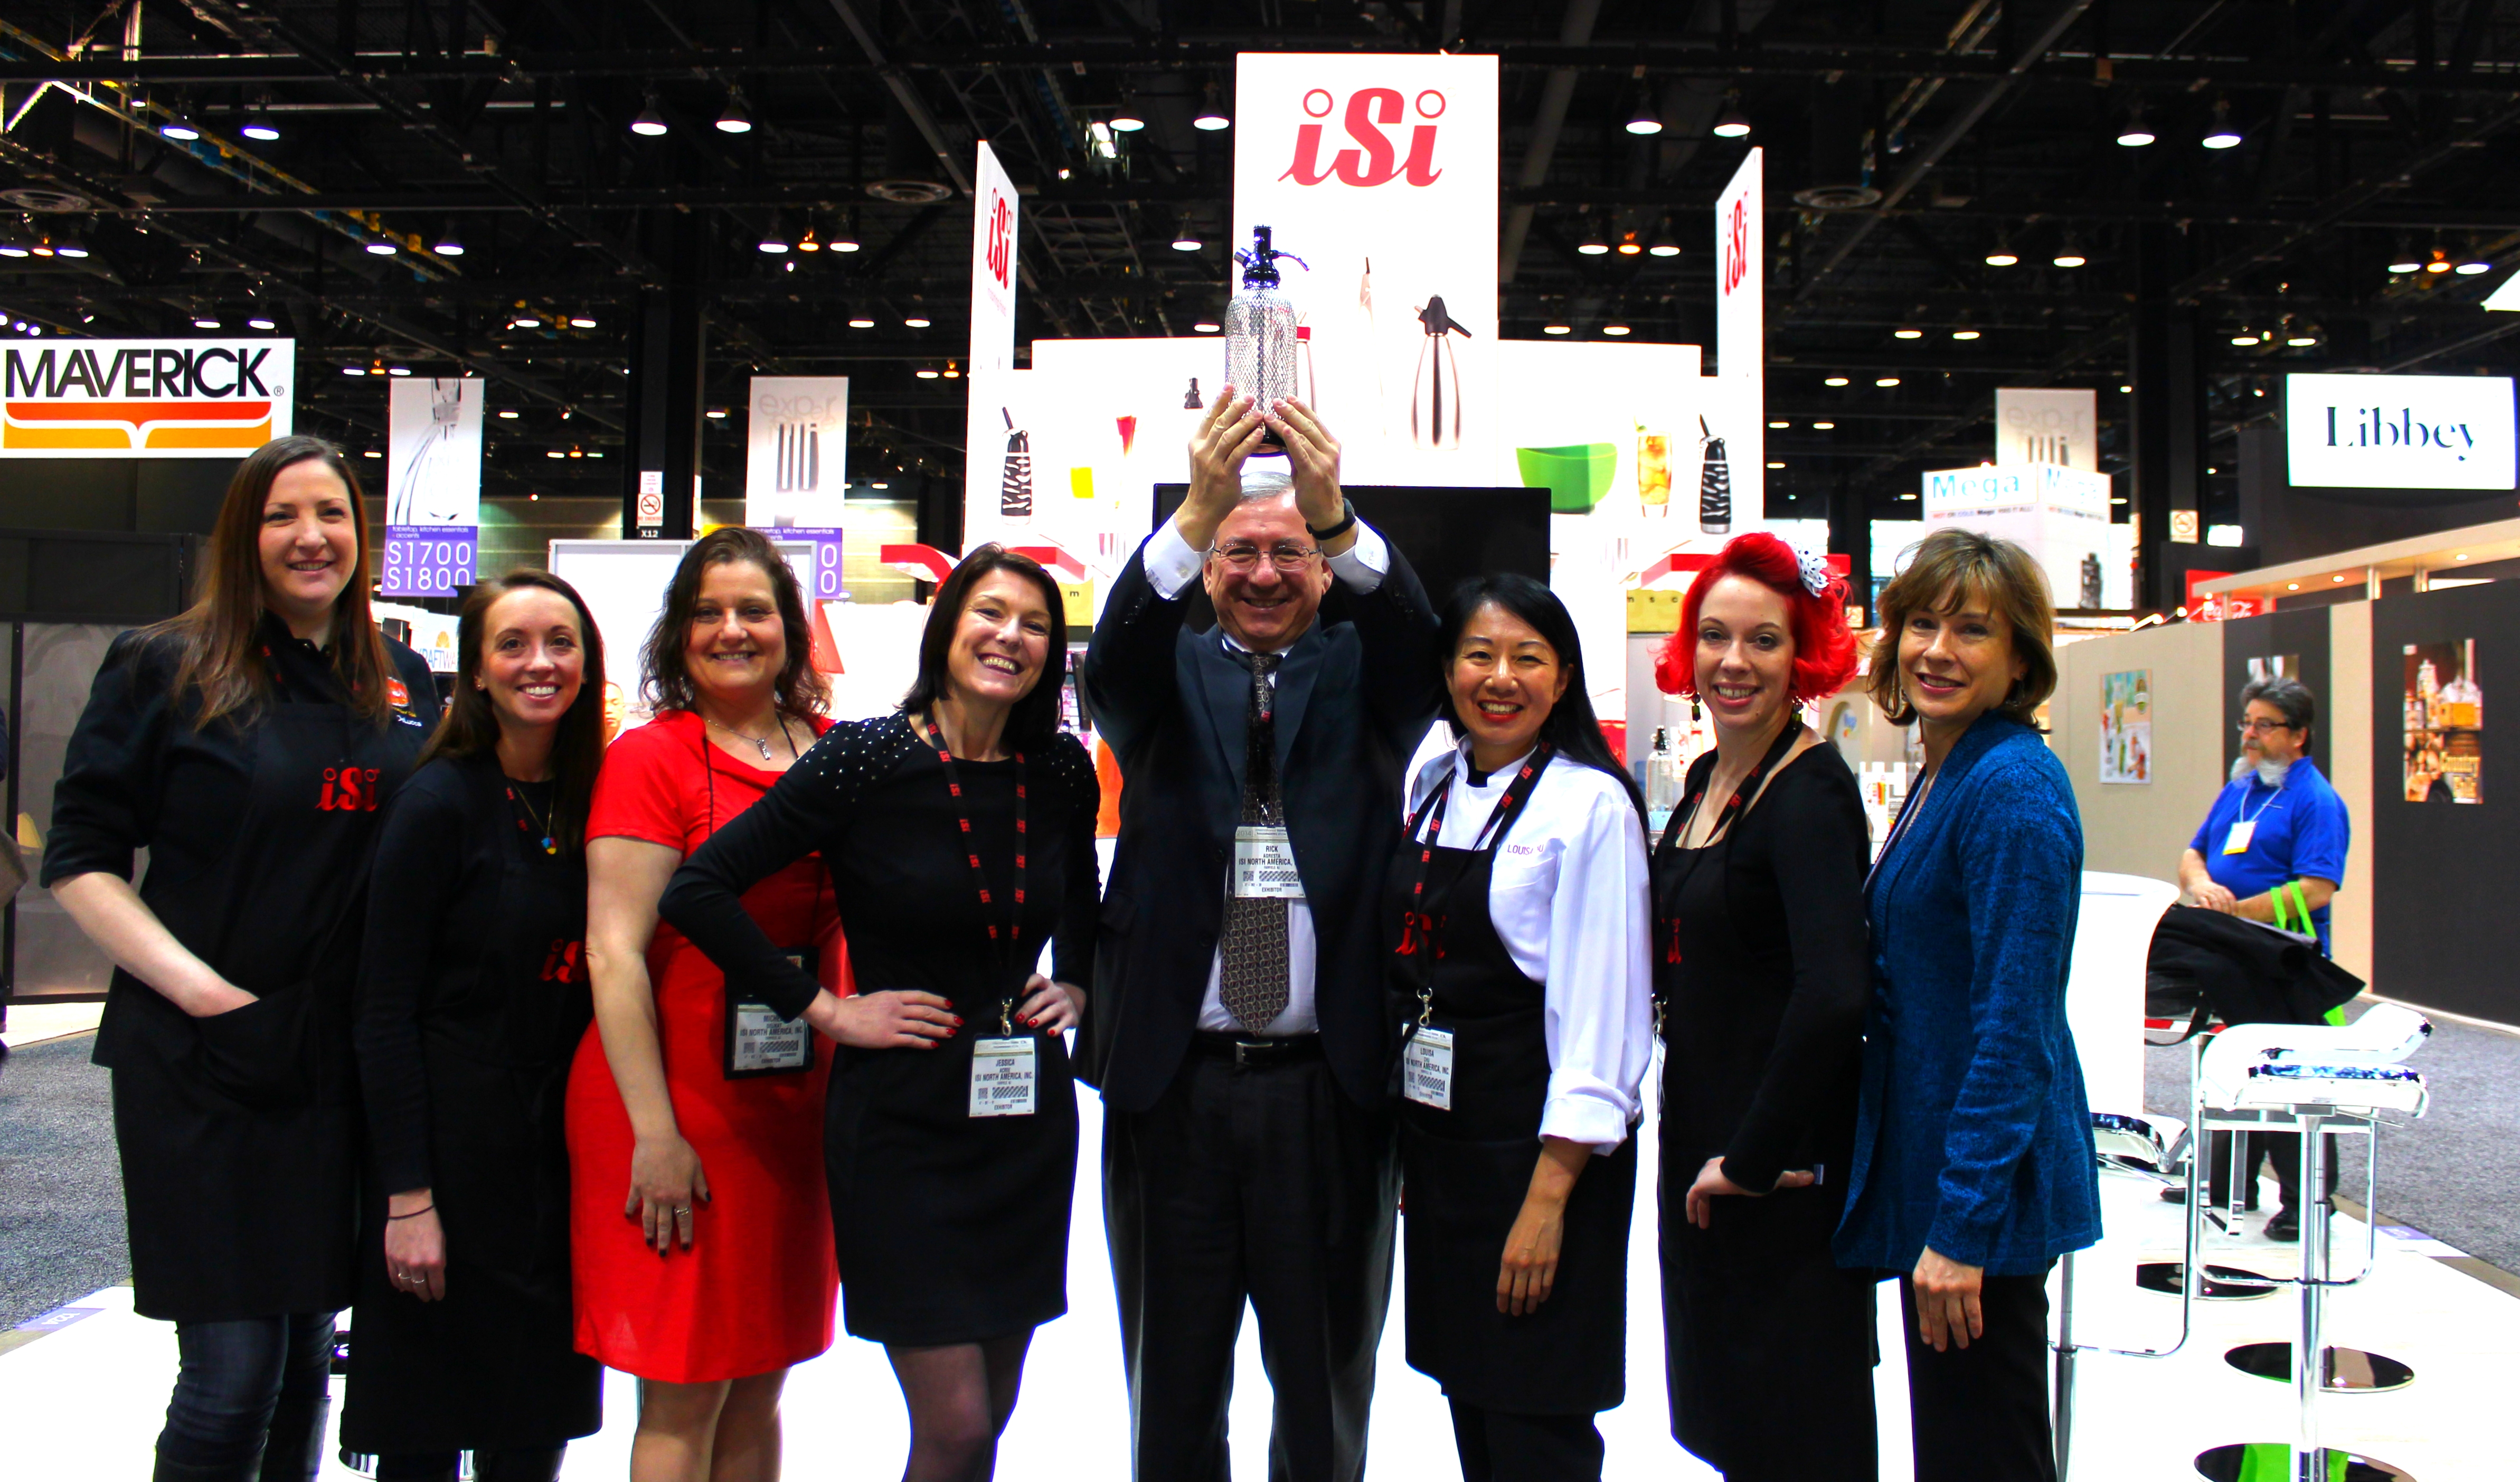 iSi celebrates 50 years of inspiration with new product introductions at the 2014 International Housewares Show in Chicago